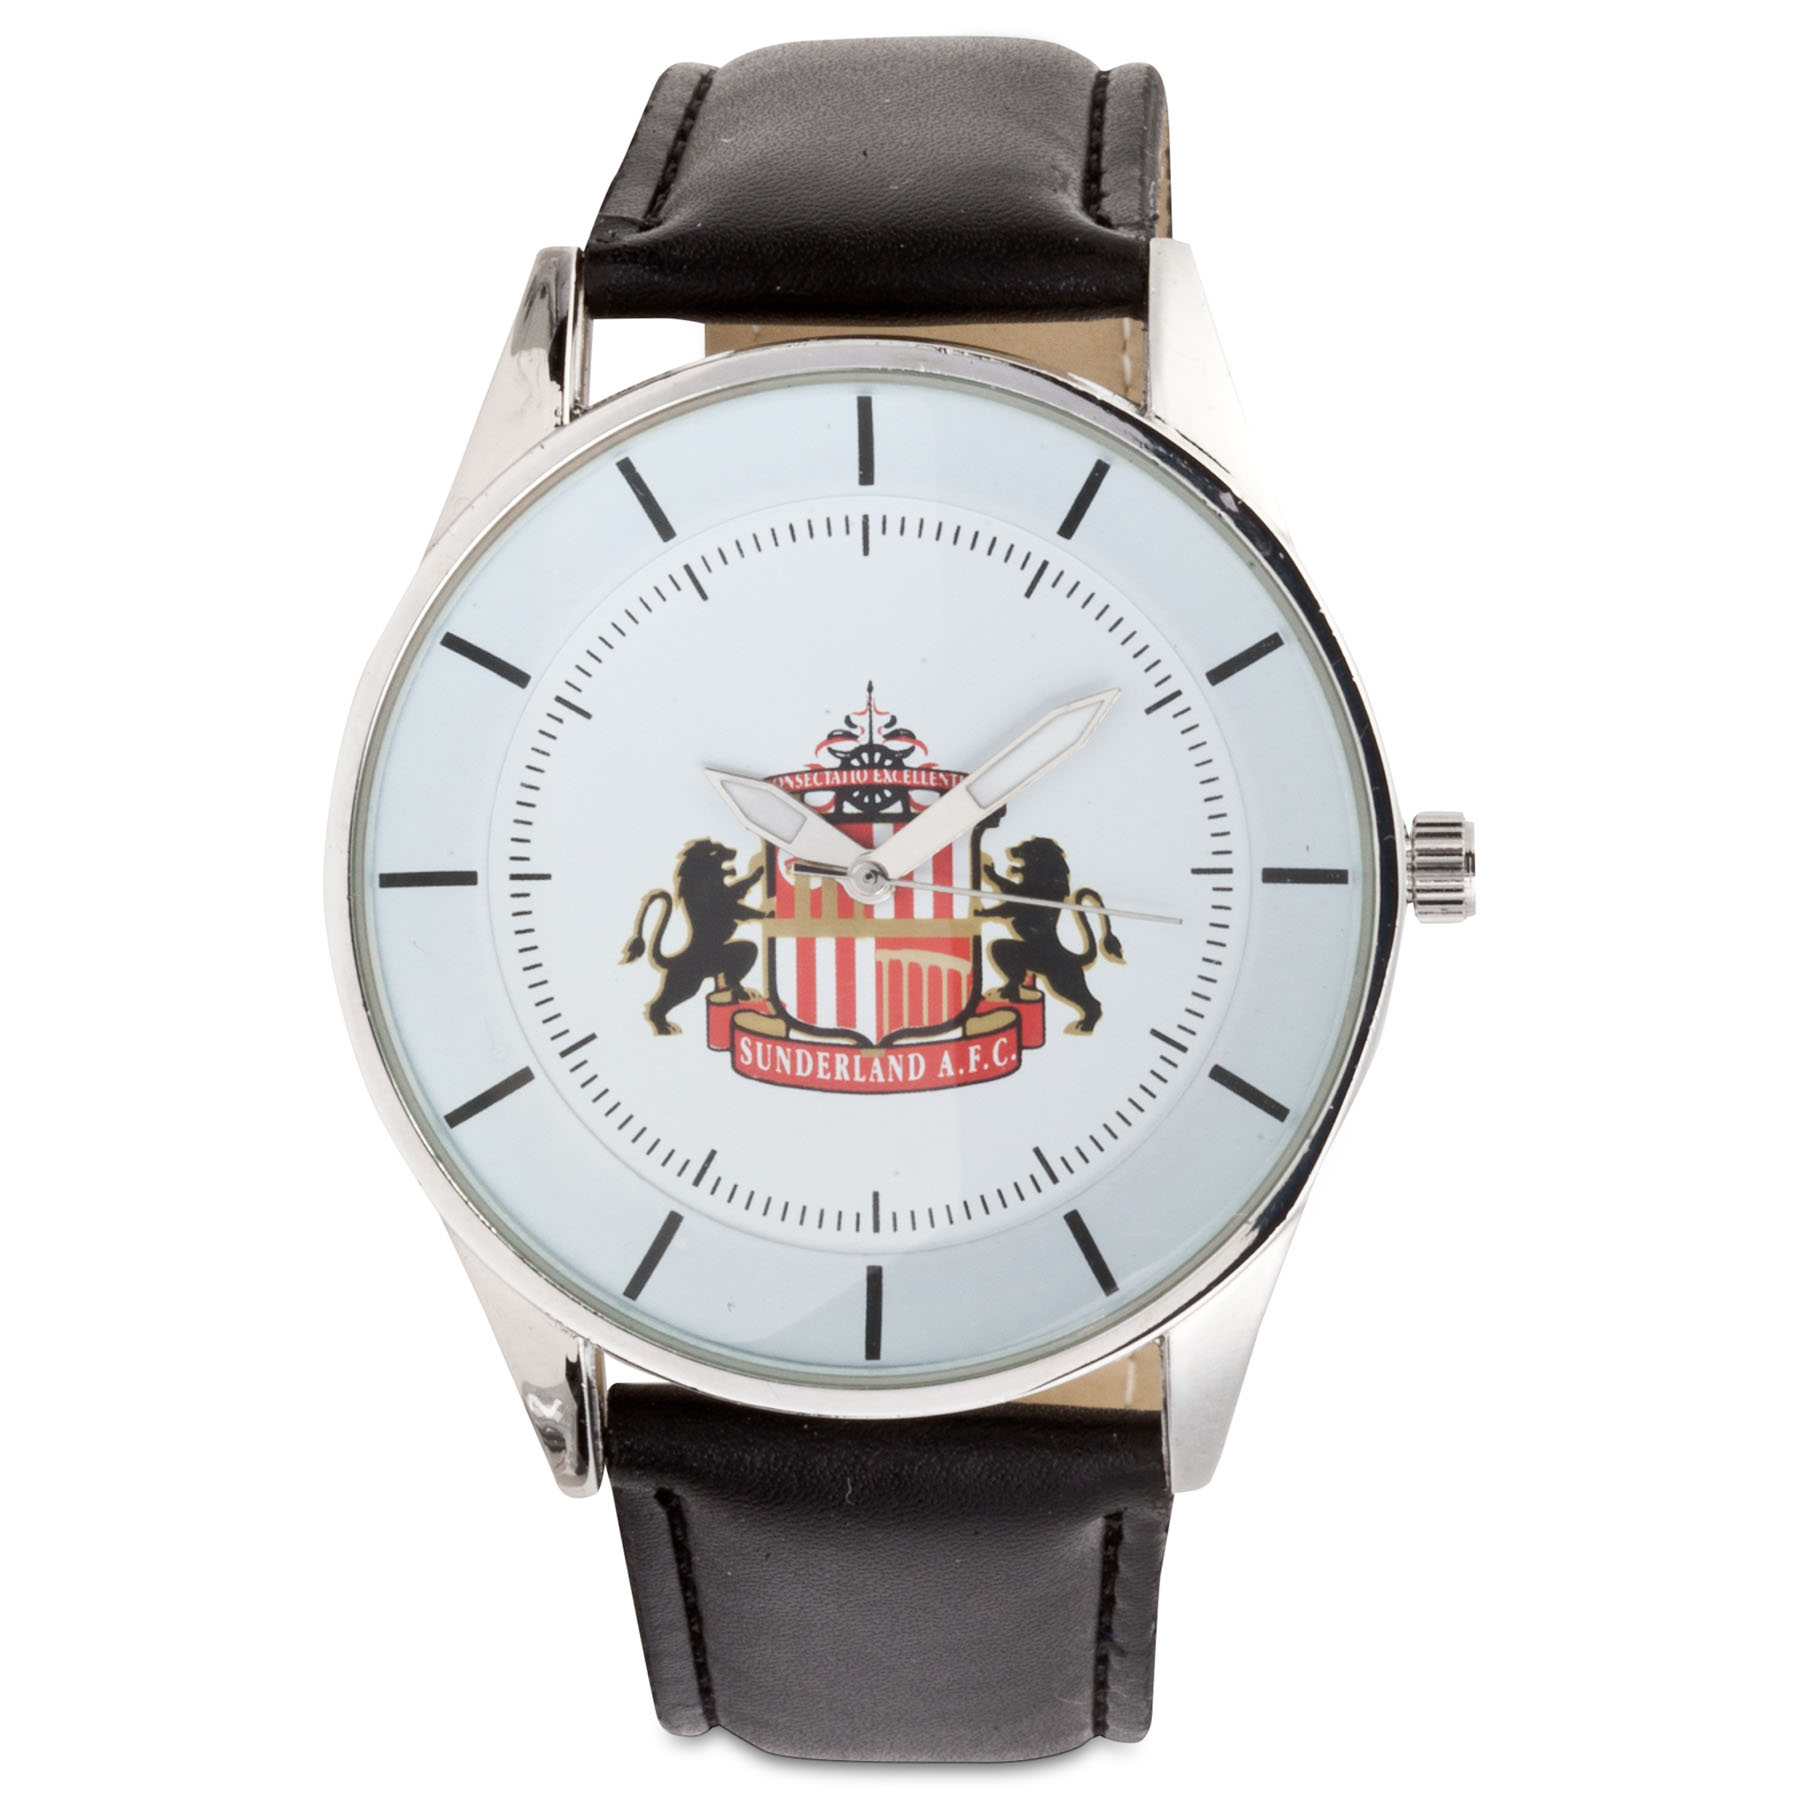 Sunderland Mens Pu Leather Strap Watch